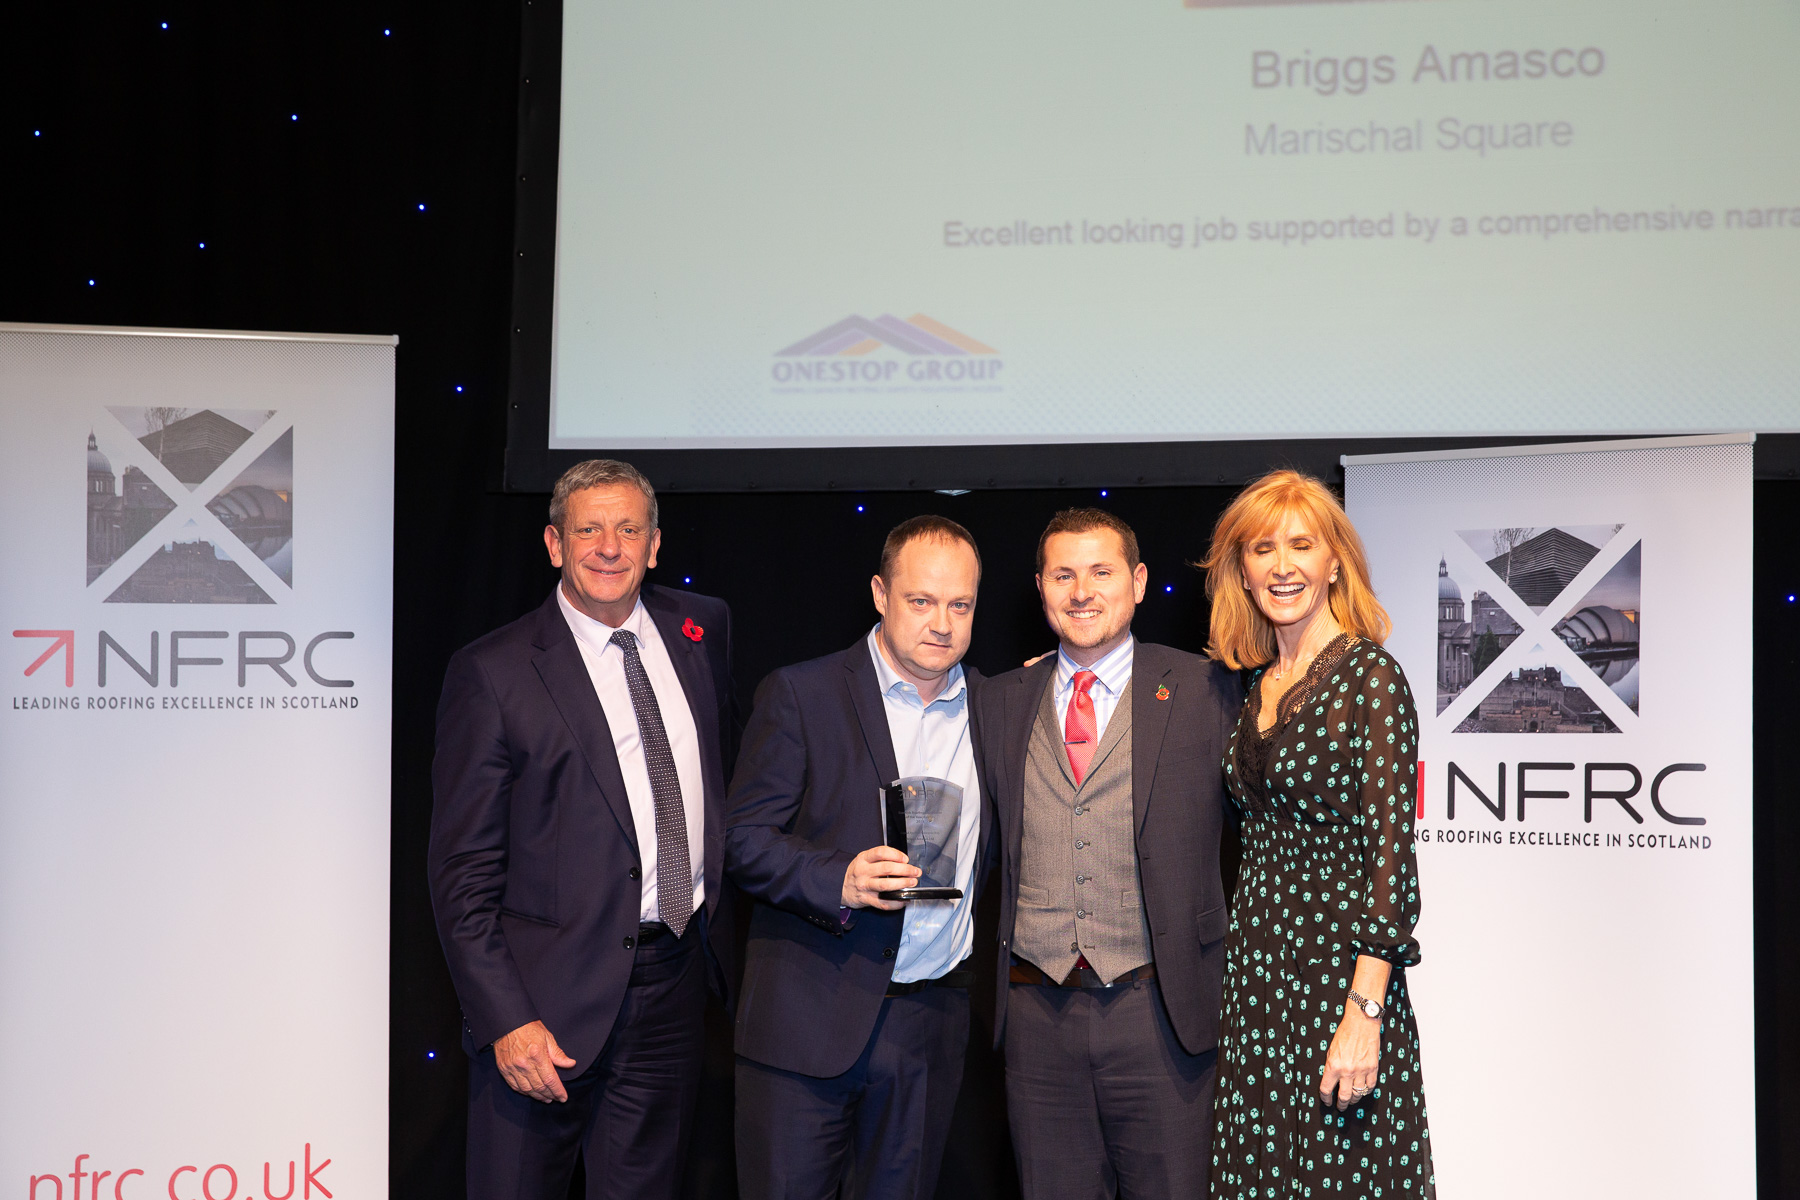 BriggsAmasco's roofing excellence has been rewarded with a successful showing at this year's Scottish NFRC Awards.